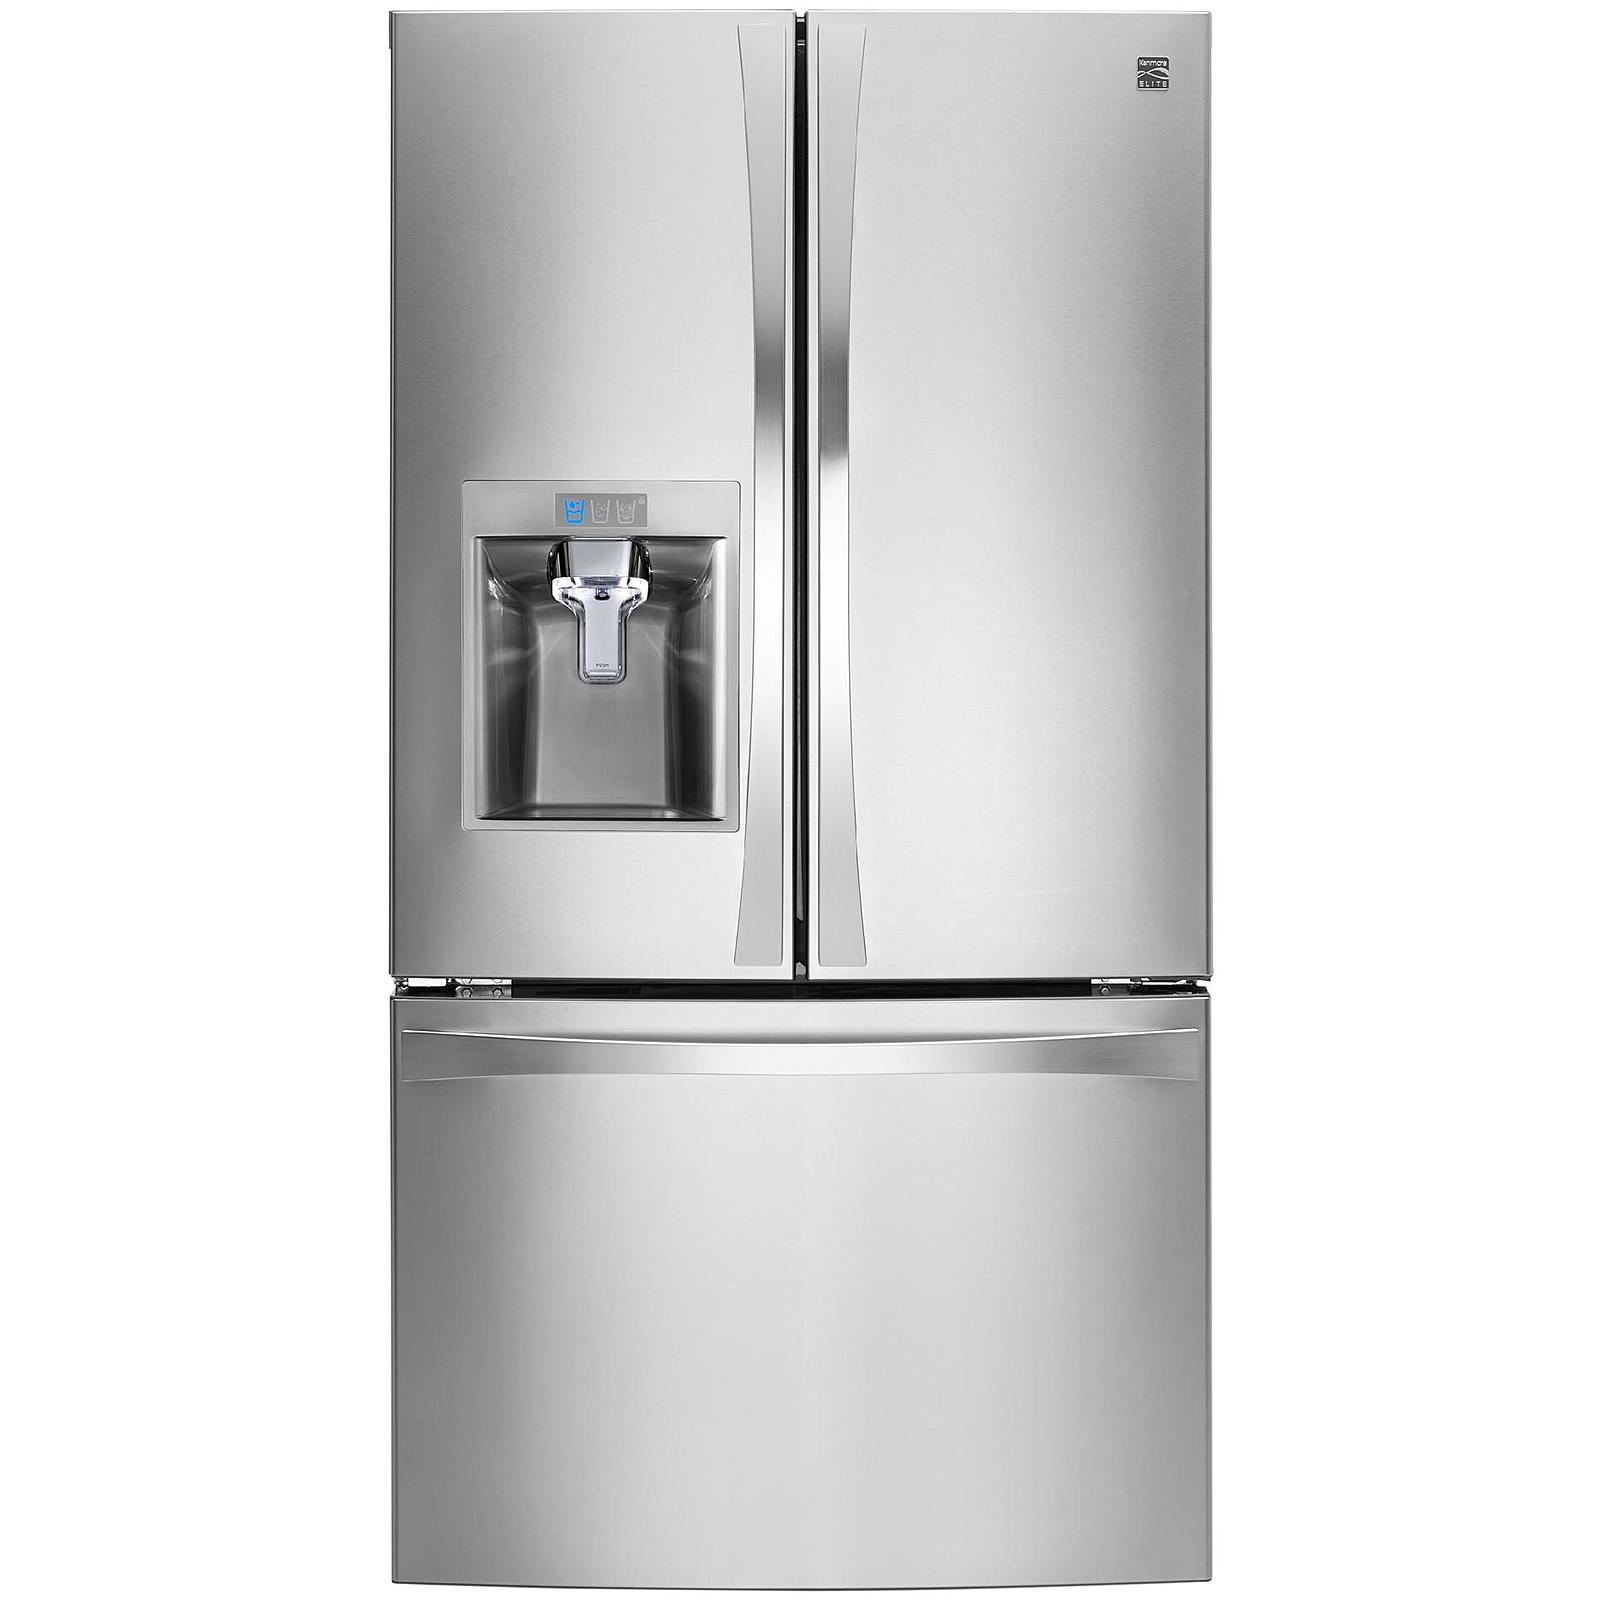 Kenmore Elite 74023 29.8 cu. ft. French Door Bottom-Freezer Refrigerator—Stainless Steel